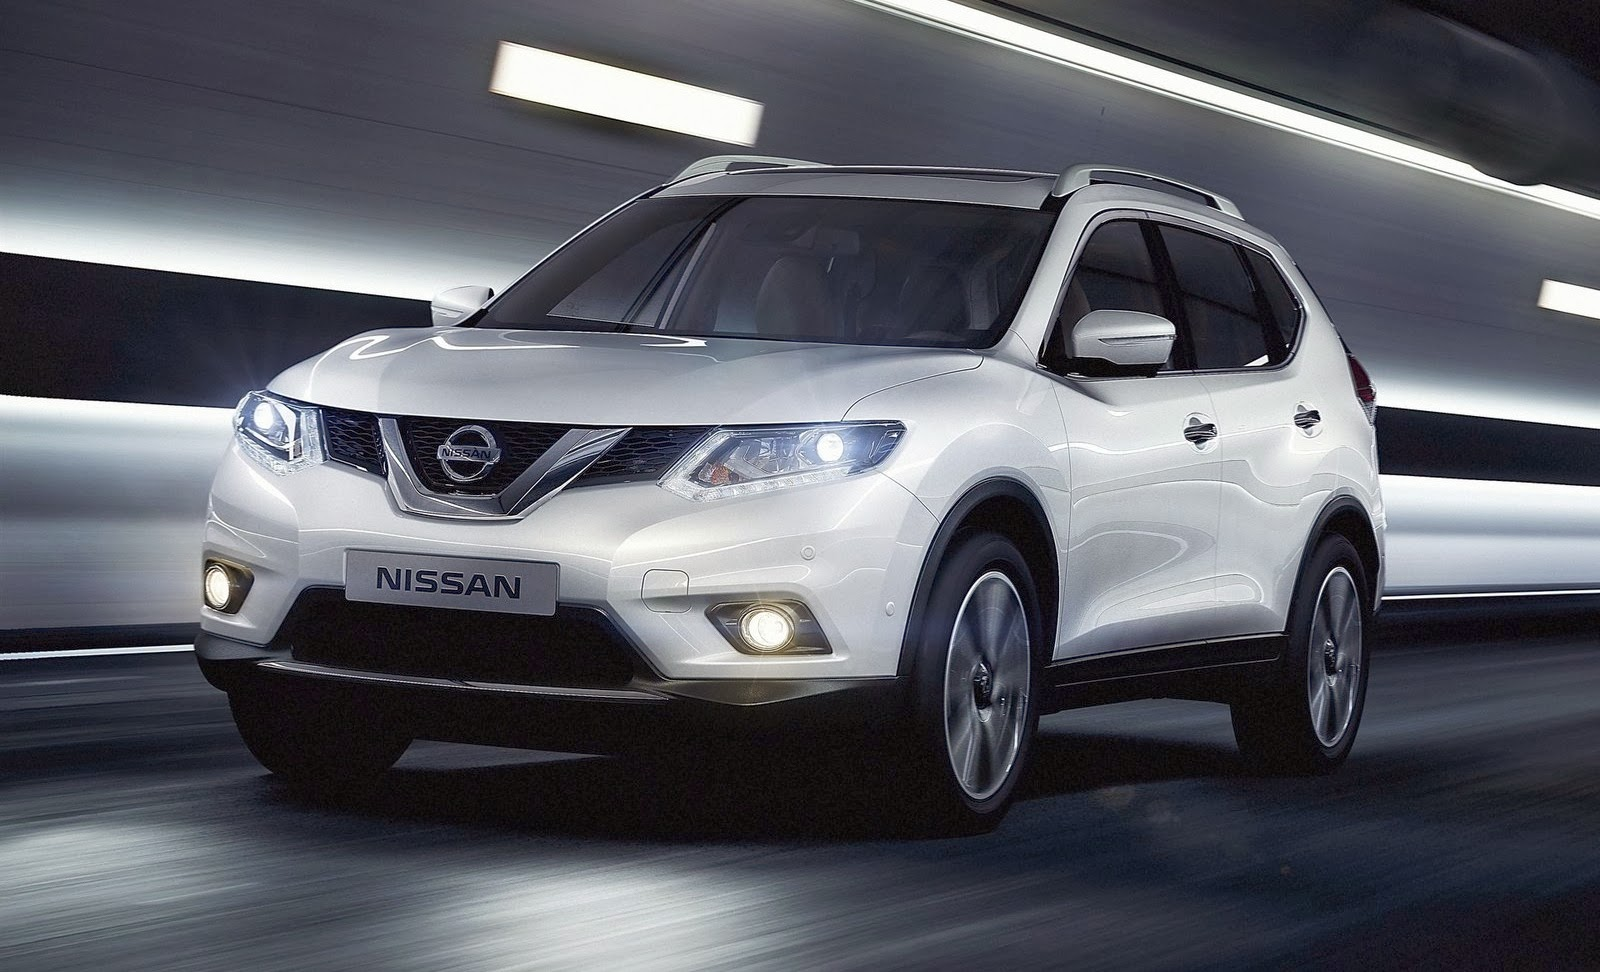 nissan x trail suv in india 2015 techgangs. Black Bedroom Furniture Sets. Home Design Ideas